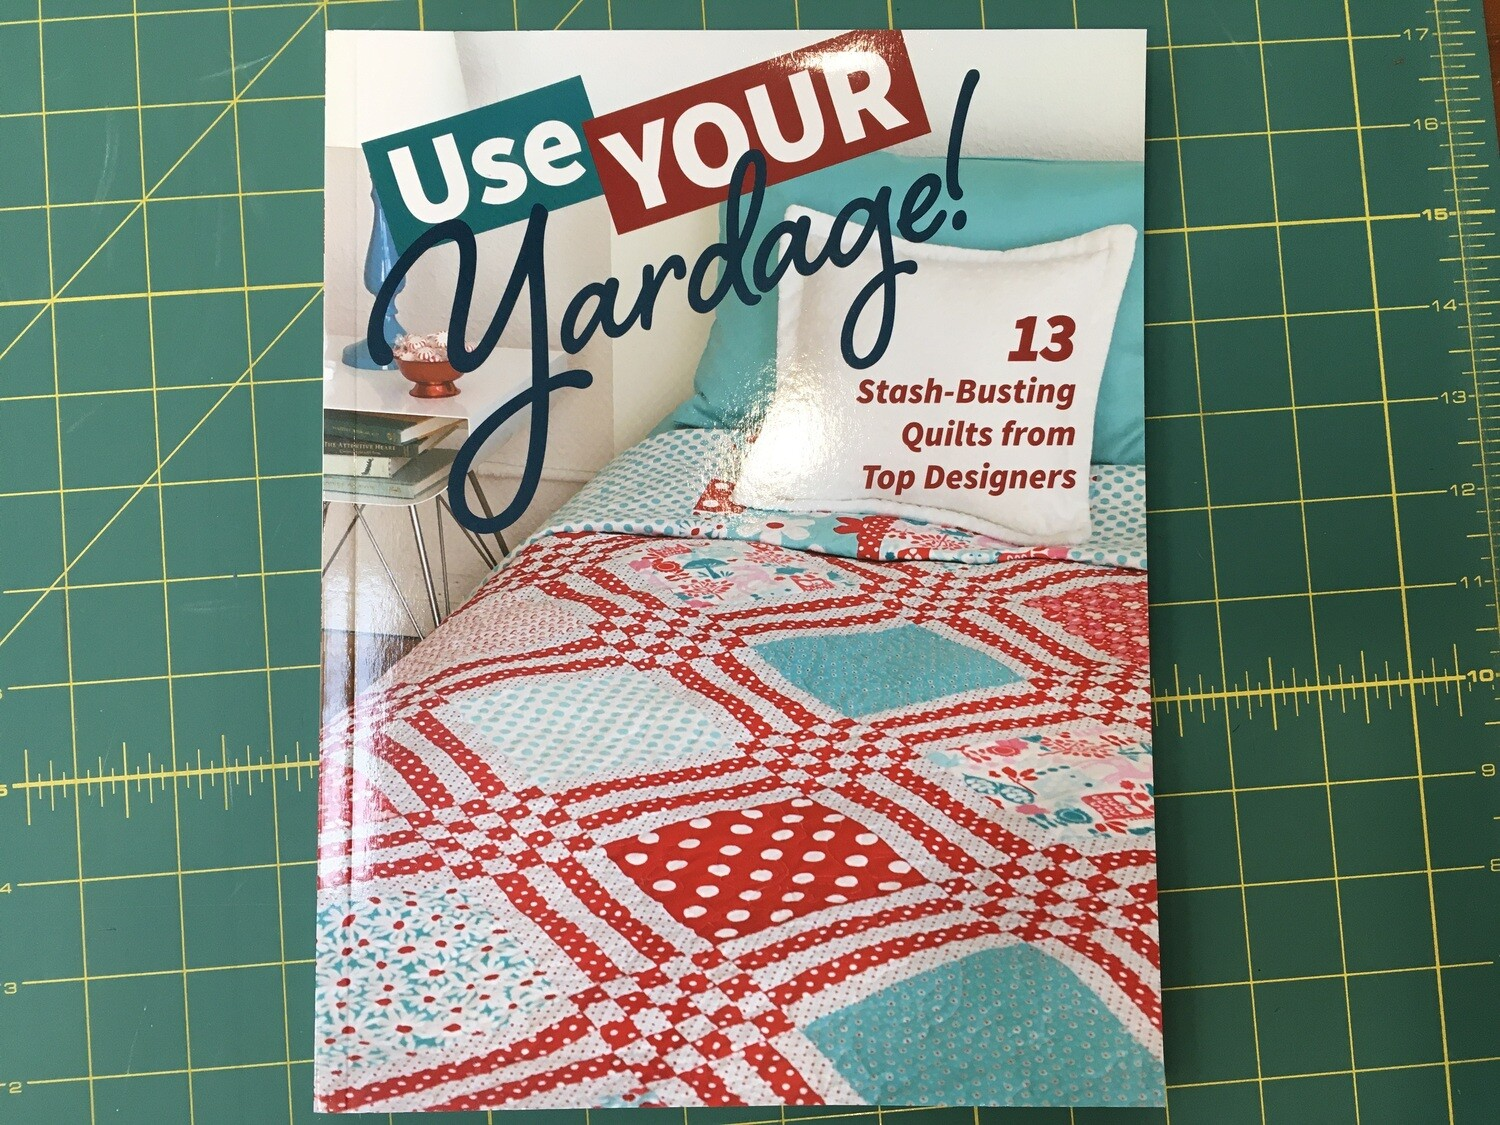 Use Your Yardage book